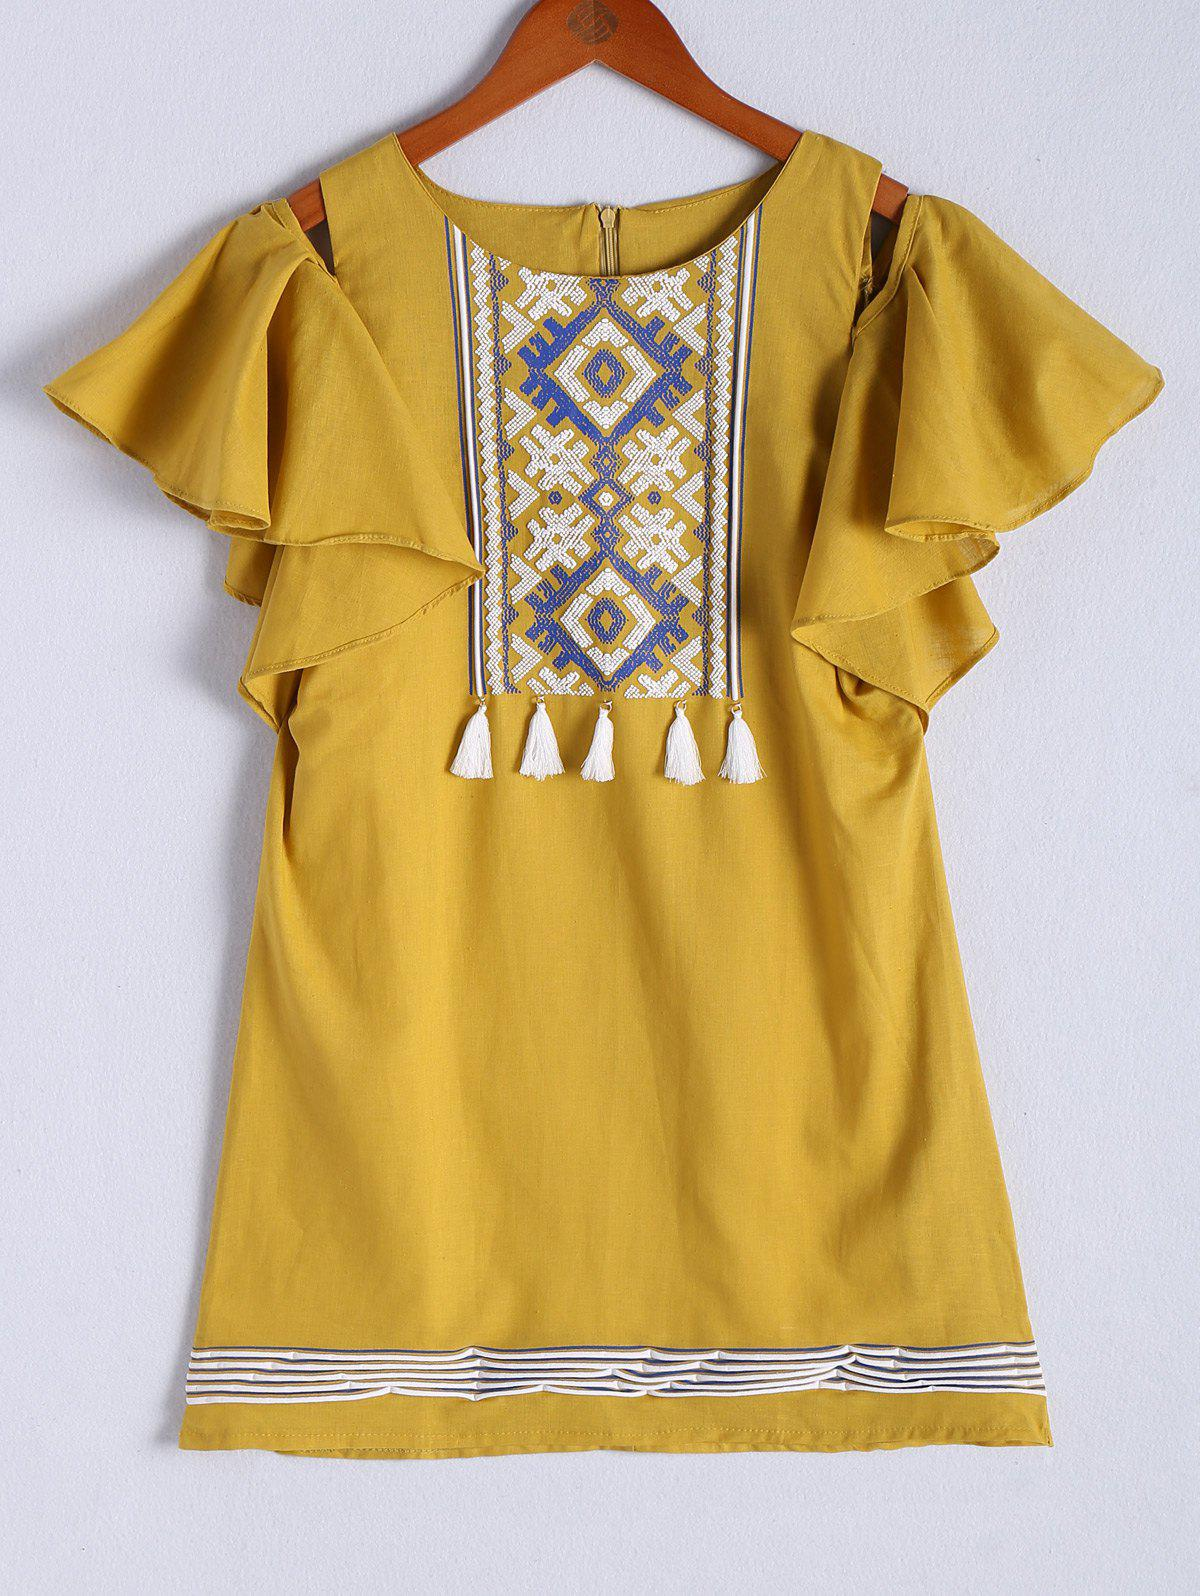 Ethnic Women's Cold Shoulder Tribal Print Flounced Fringed Dress - EARTHY ONE SIZE(FIT SIZE XS TO M)